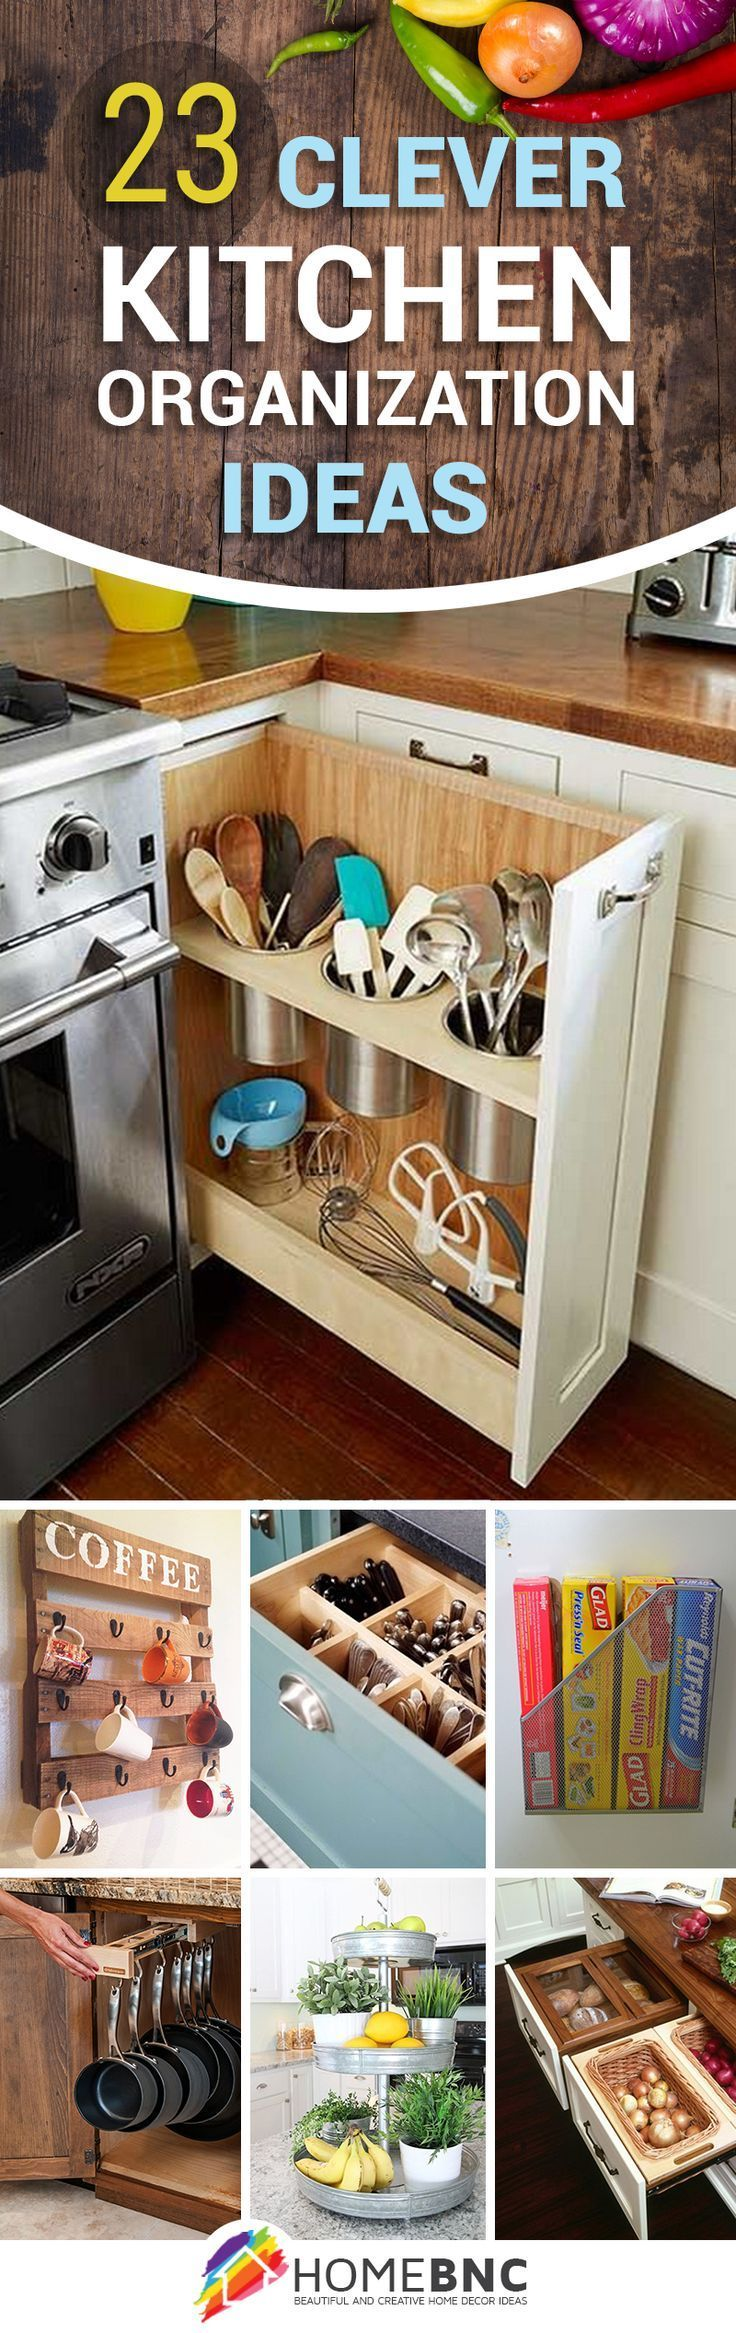 best 25 kitchen organization ideas on pinterest storage apartment kitchen storage ideas and small spaces - Organizing Kitchen Ideas